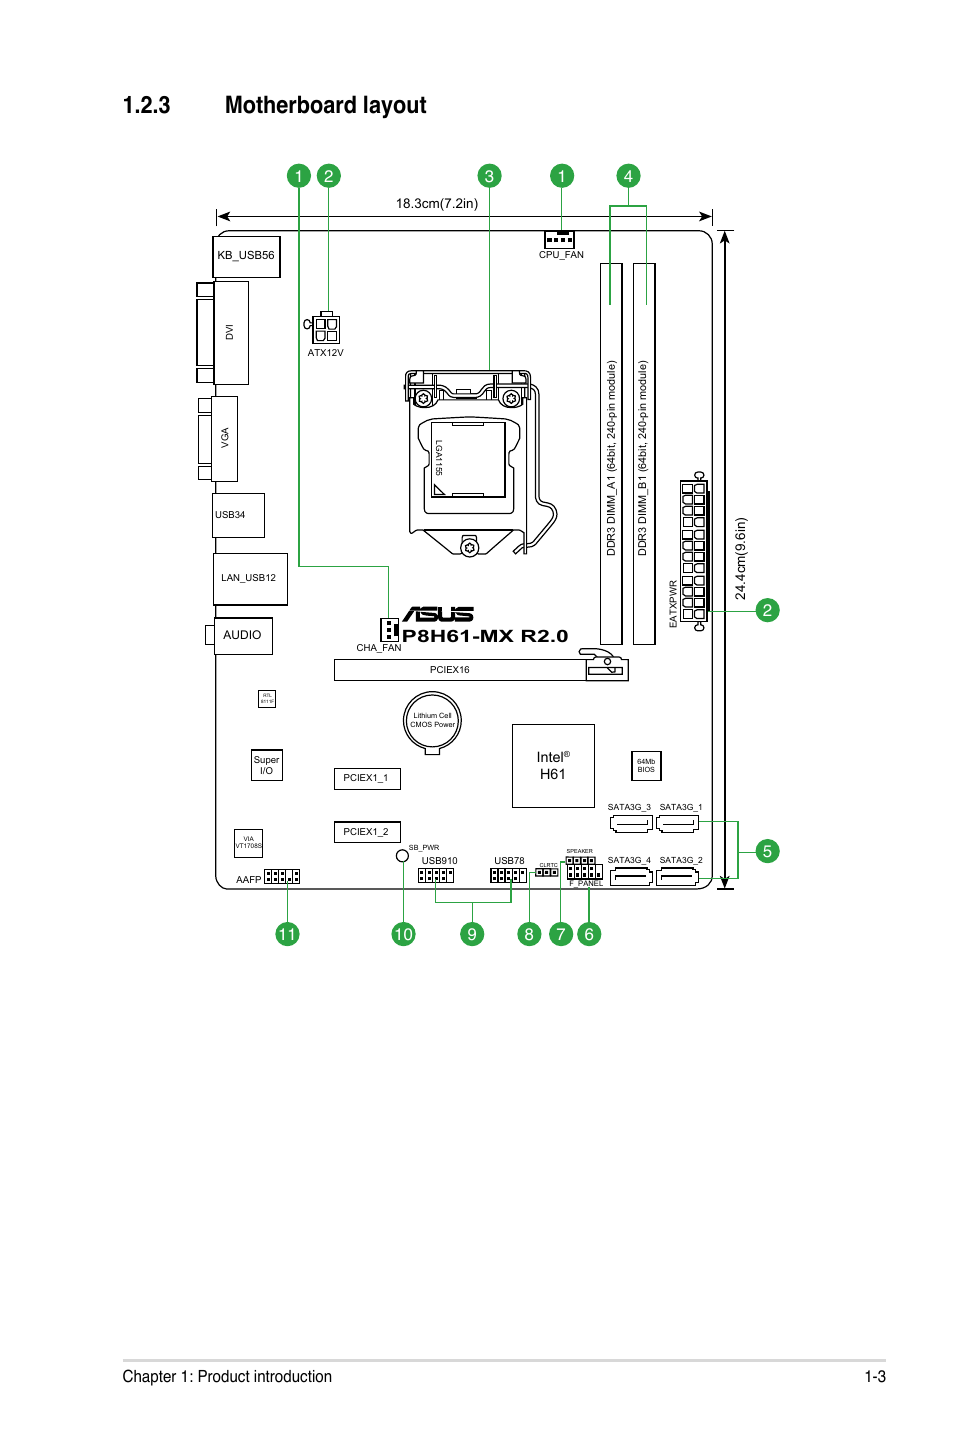 3 Motherboard Layout Chapter 1 Product Diagram Introduction